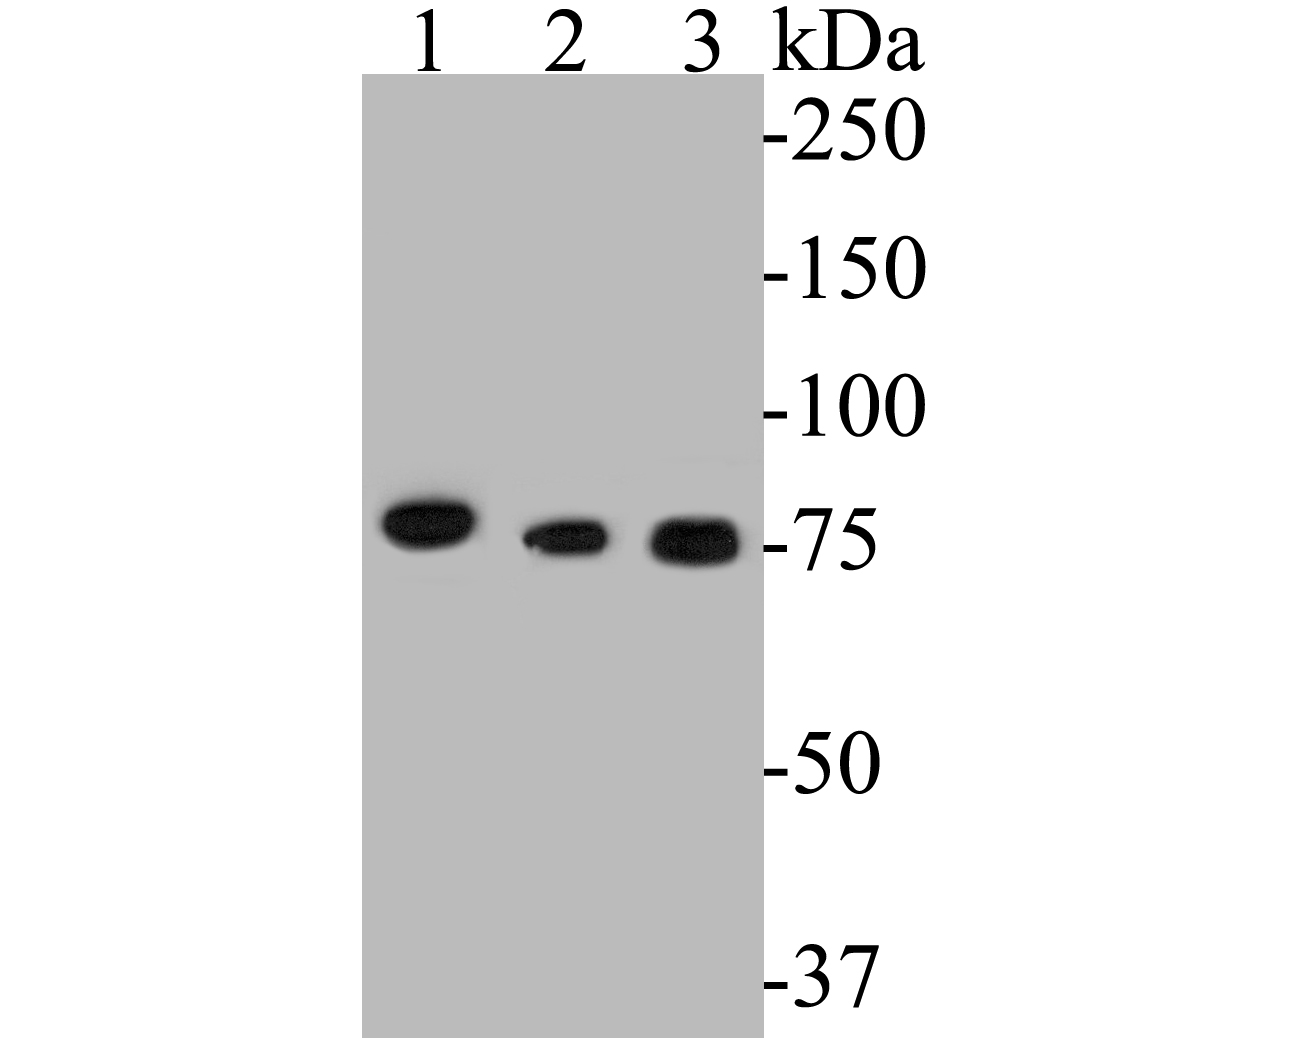 Western blot analysis of LYRIC on different lysates. Proteins were transferred to a PVDF membrane and blocked with 5% BSA in PBS for 1 hour at room temperature. The primary antibody (EM1901-61, 1/500) was used in 5% BSA at room temperature for 2 hours. Goat Anti-Mouse IgG - HRP Secondary Antibody (HA1006) at 1:5,000 dilution was used for 1 hour at room temperature.<br />  Positive control: <br />  Lane 1: MCF-7 cell lysate<br />  Lane 2: Jurkat cell lysate<br />  Lane 3: Hela cell lysate